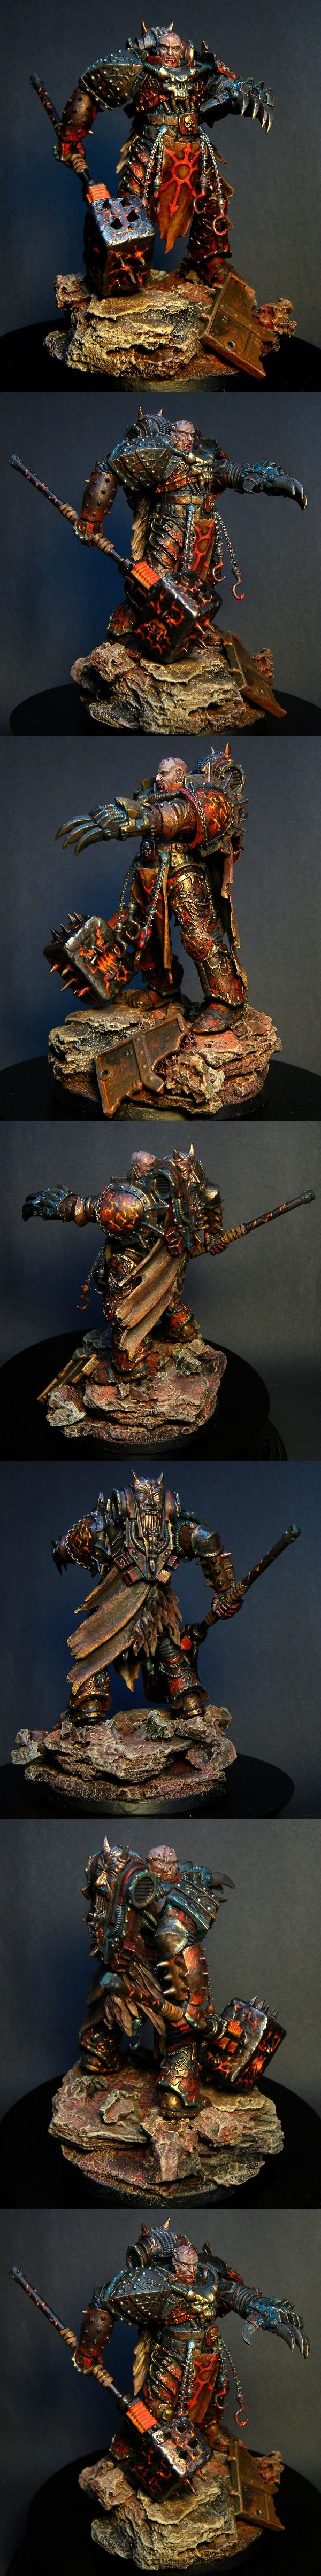 CoolMiniOrNot - Chaos Lord by Roman 2.0